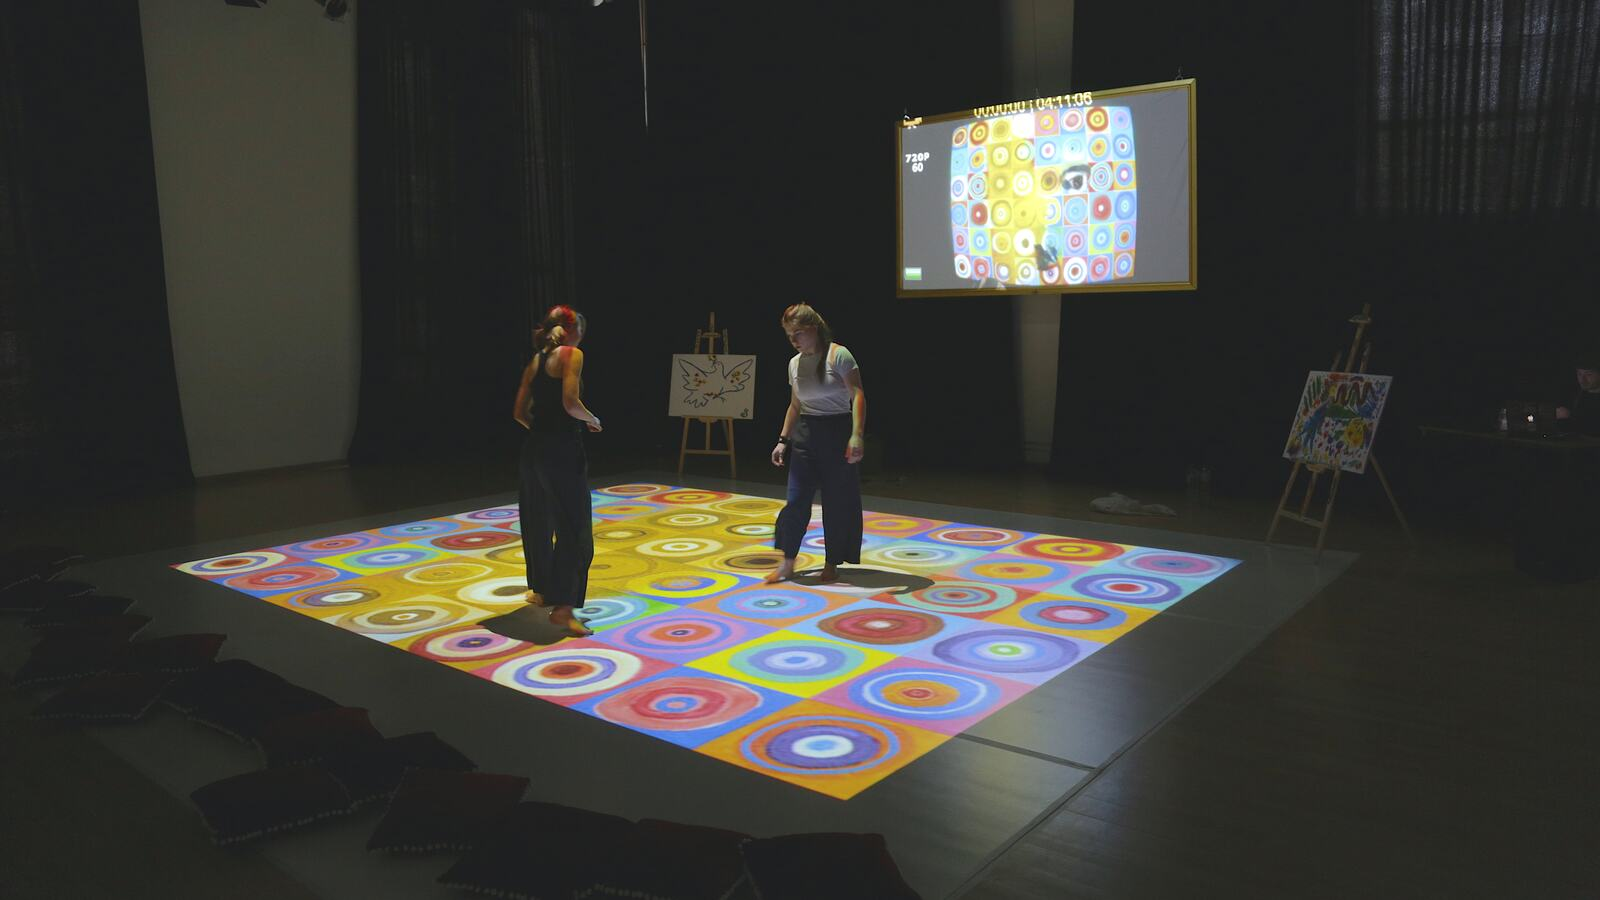 Artist Performance in an Interactive Space